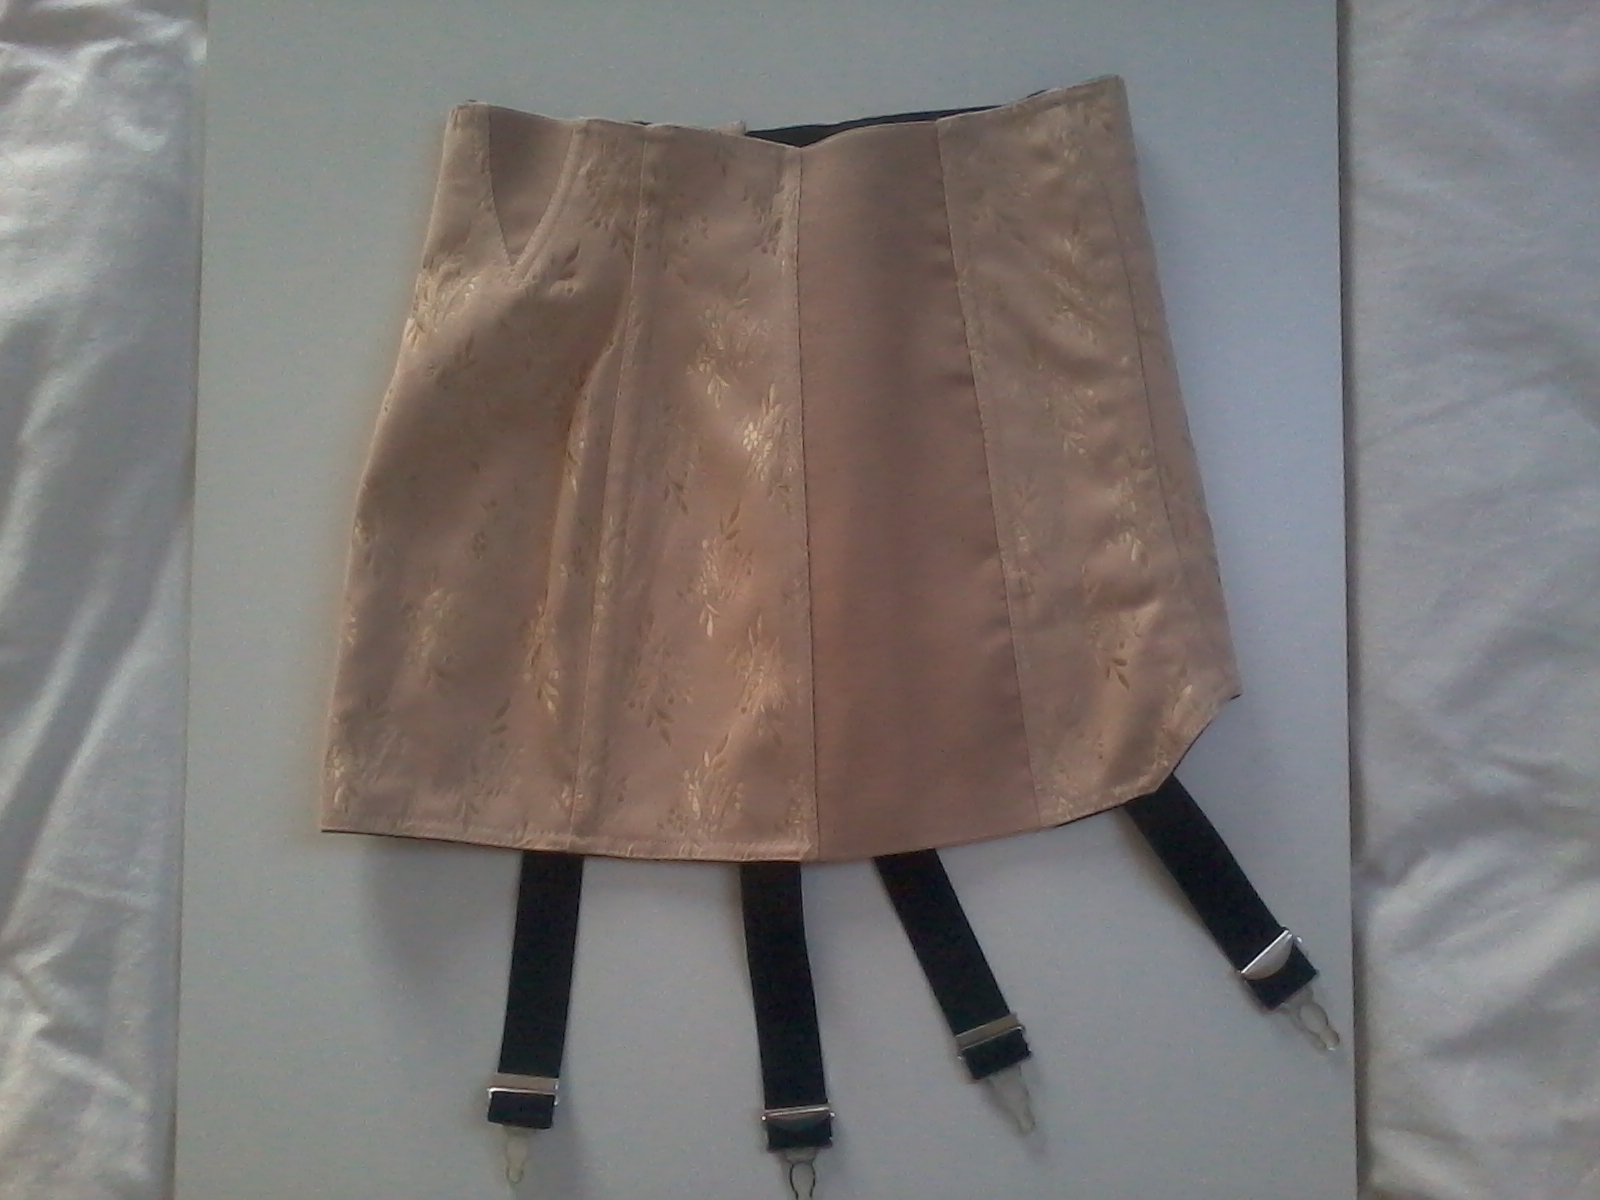 New girdle in tan colour